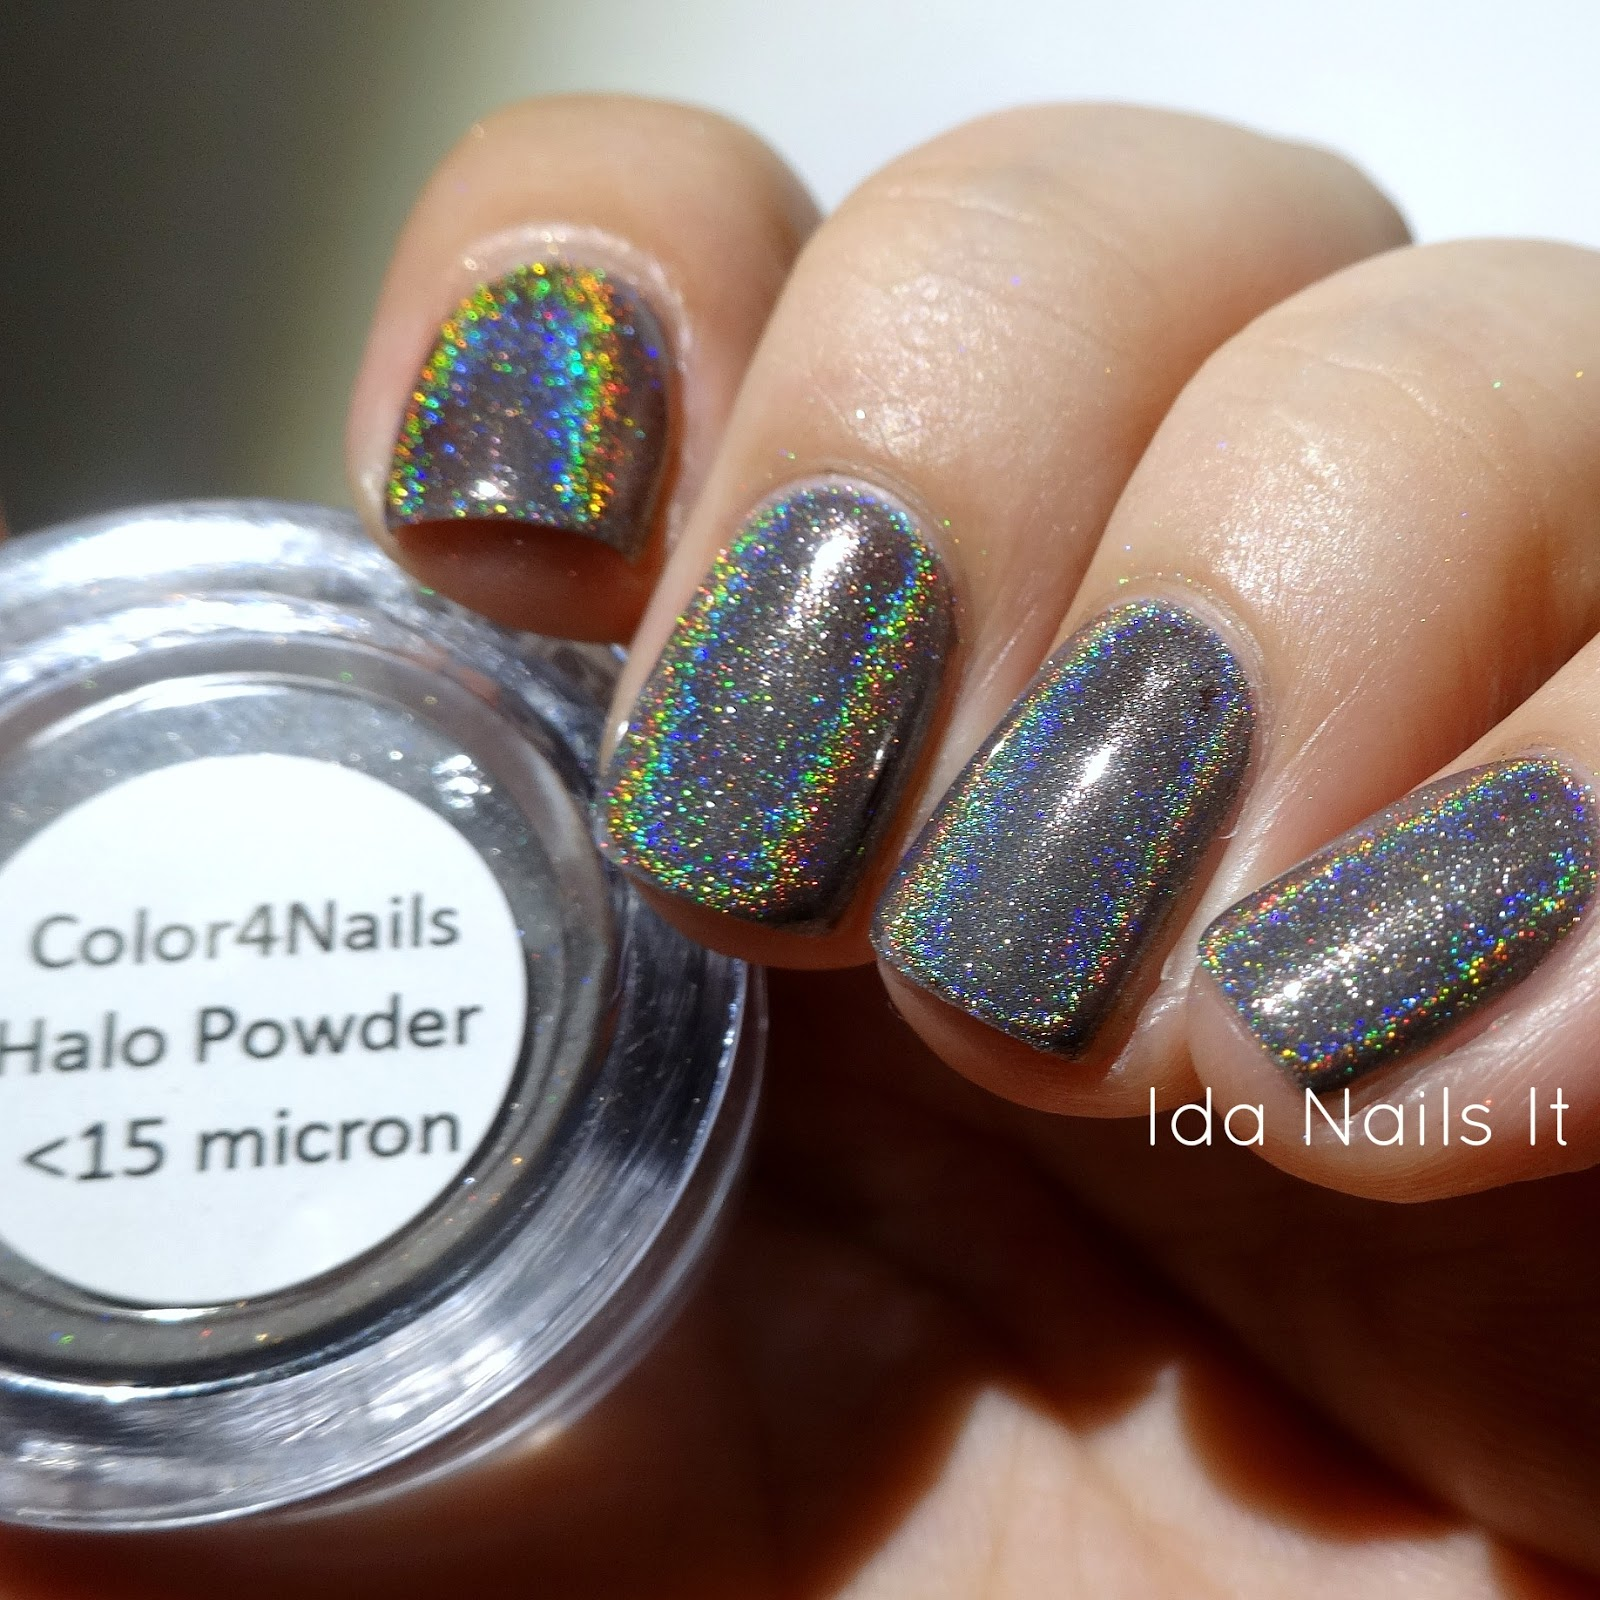 Ida Nails It: Color4Nails Halo Chrome Powder Pigment: Swatches and ...